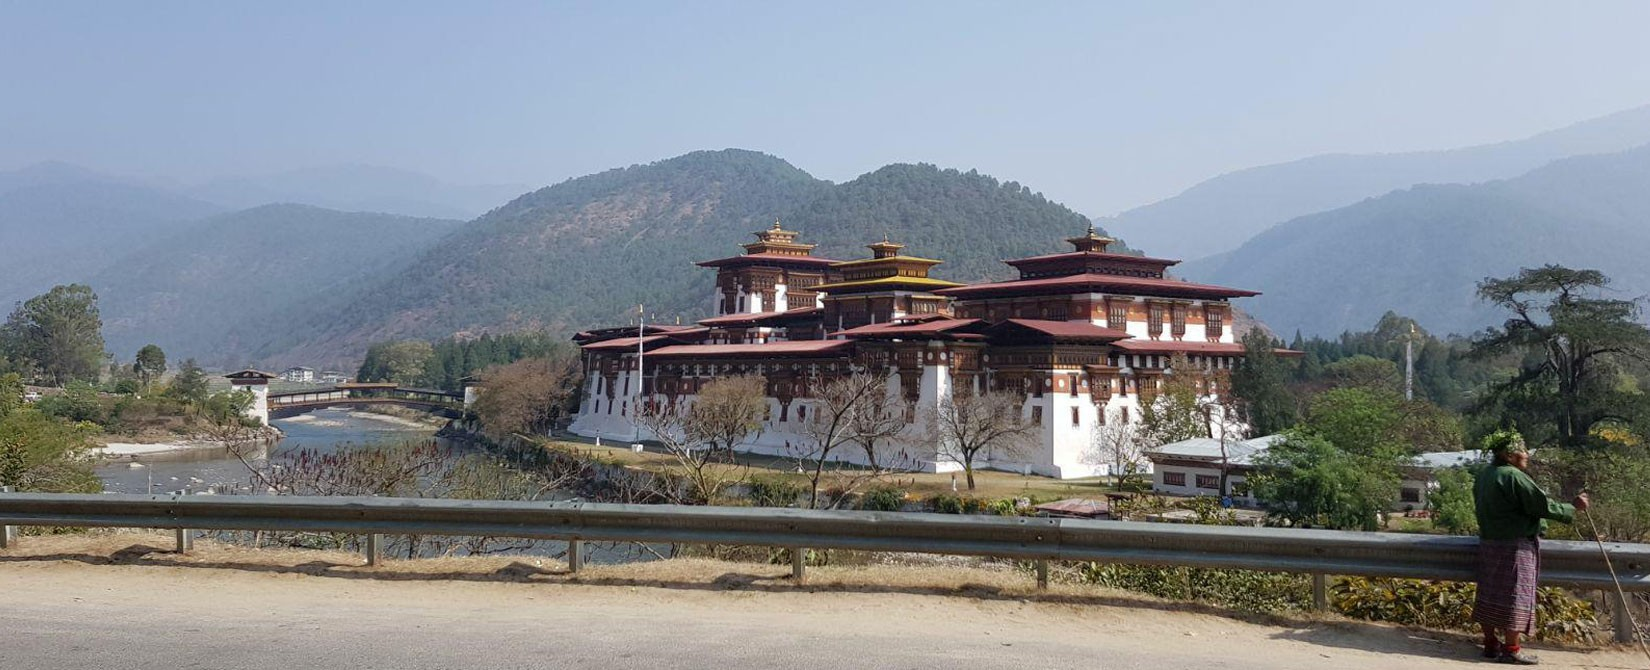 Land of Thunder Dragon tour Bhutan